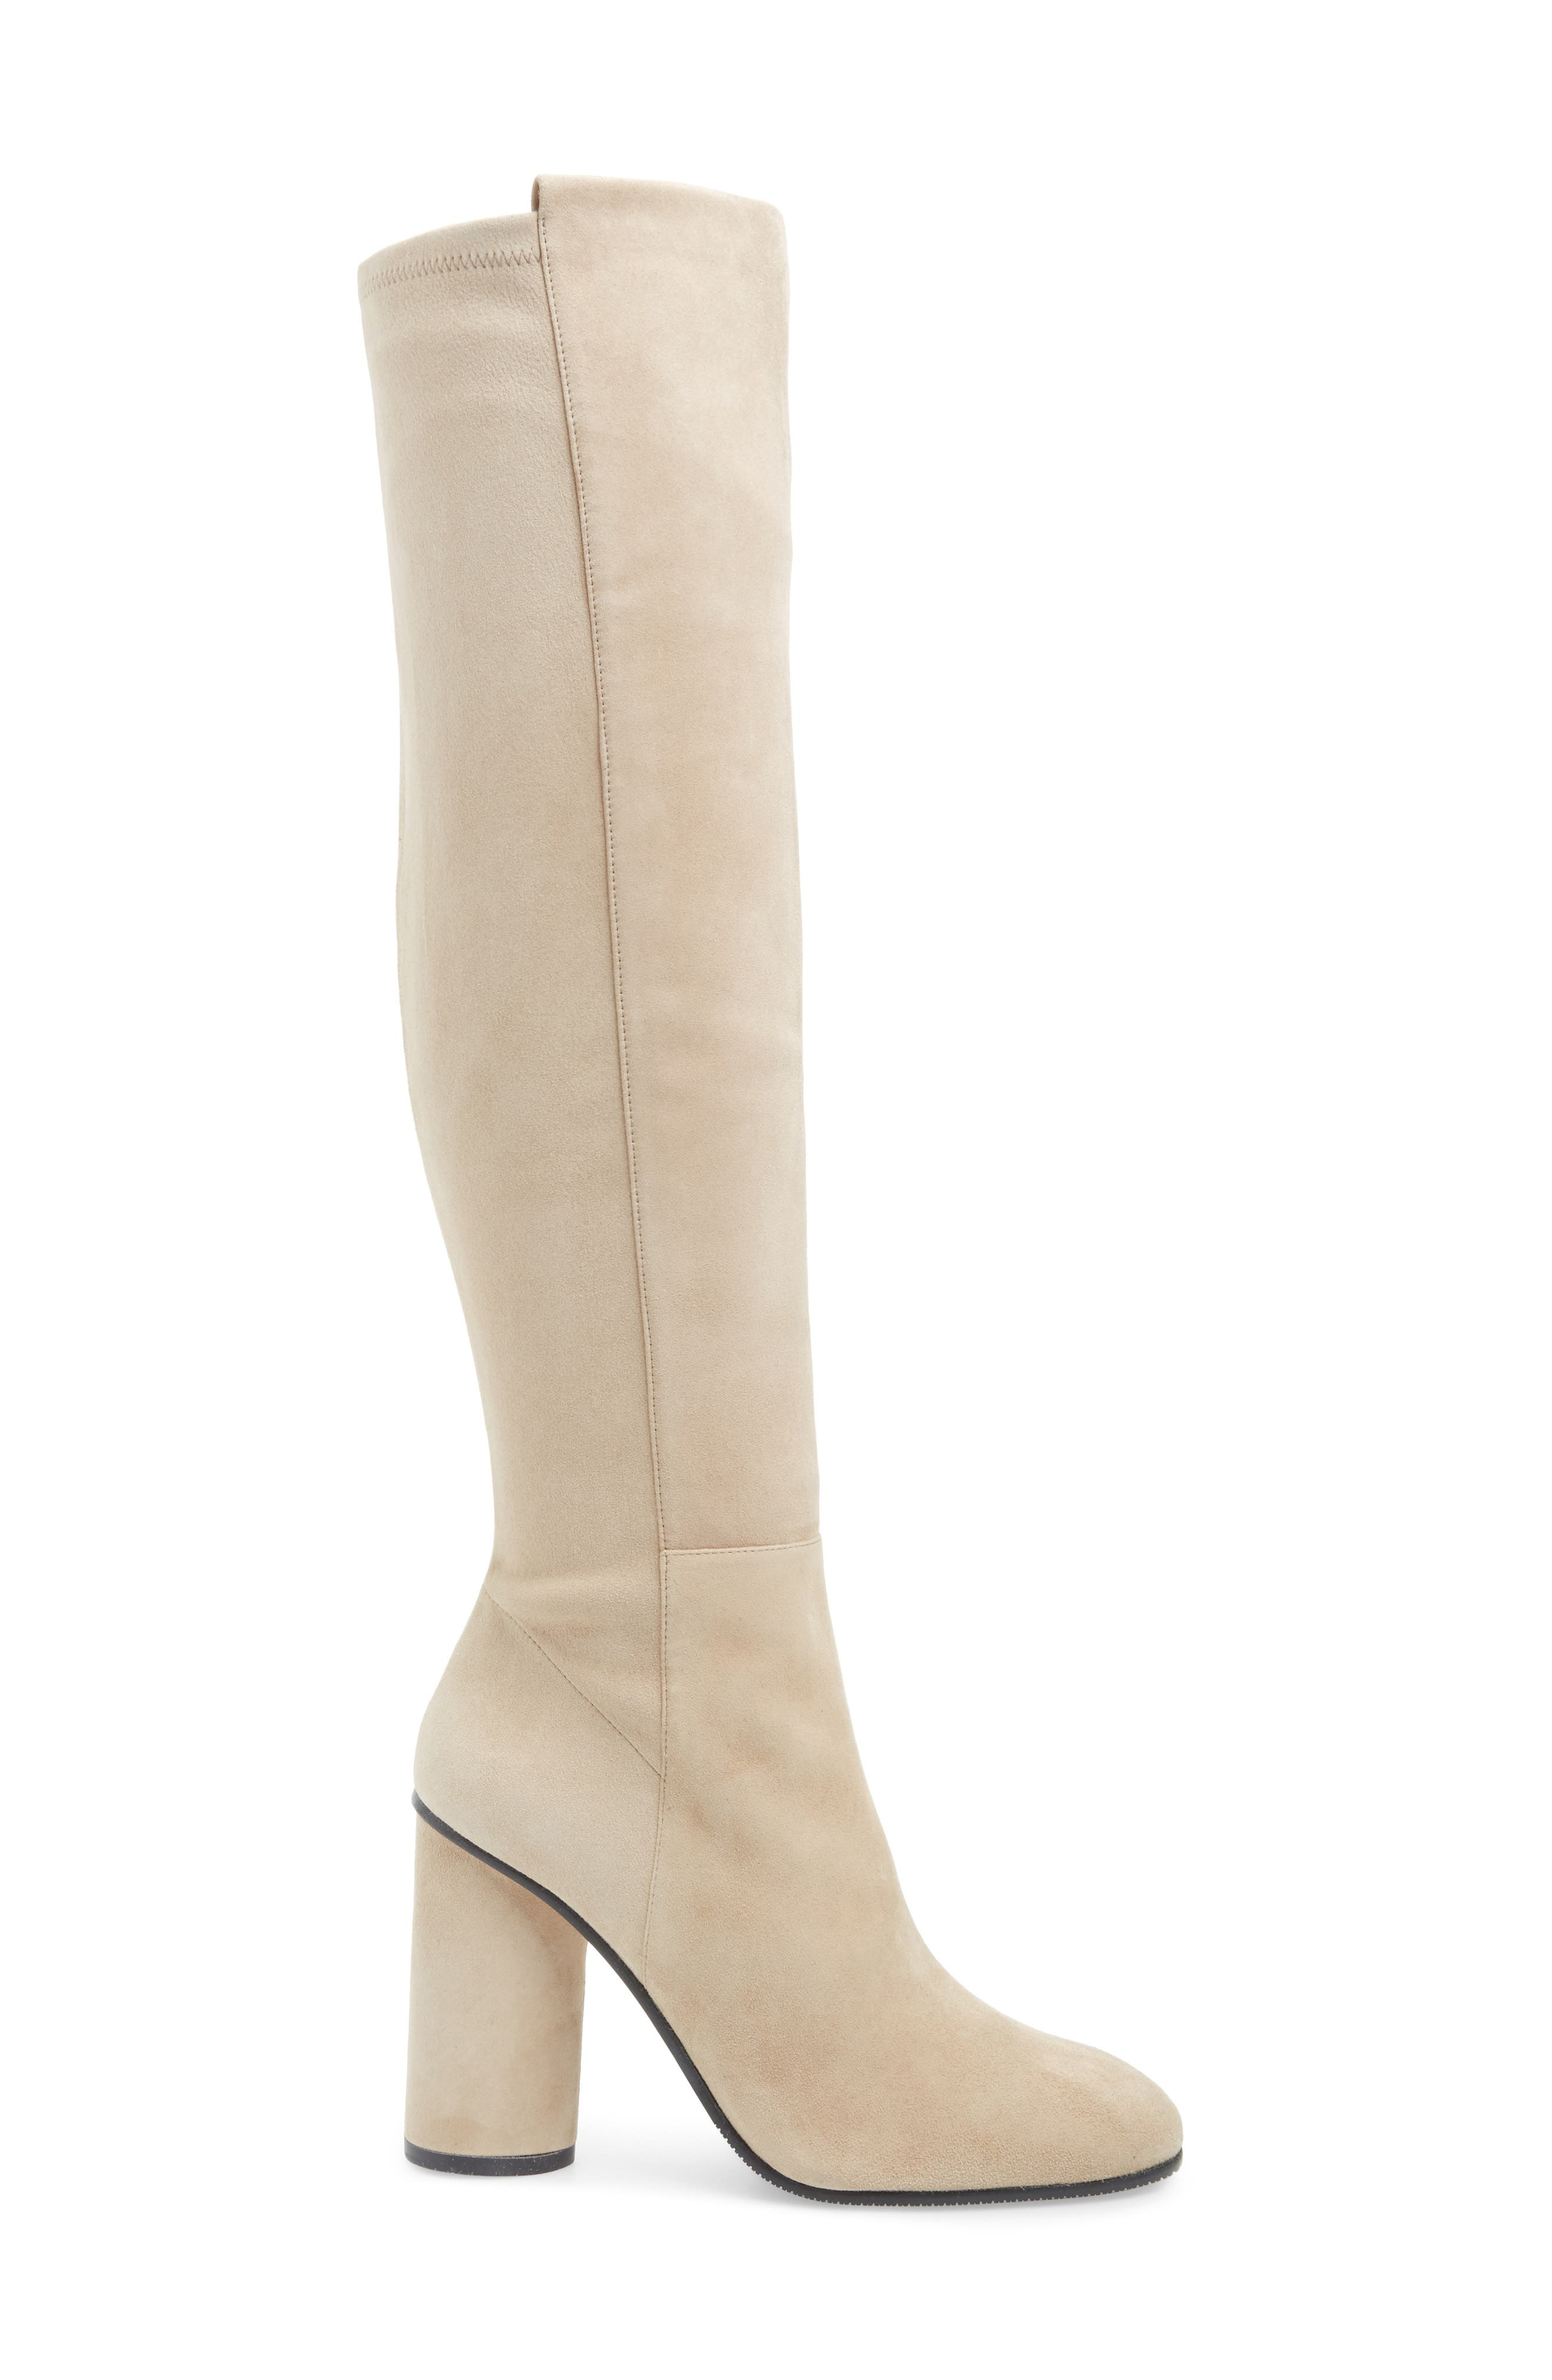 Eloise Over the Knee Boot,                             Alternate thumbnail 3, color,                             BROWNSTONE SUEDE